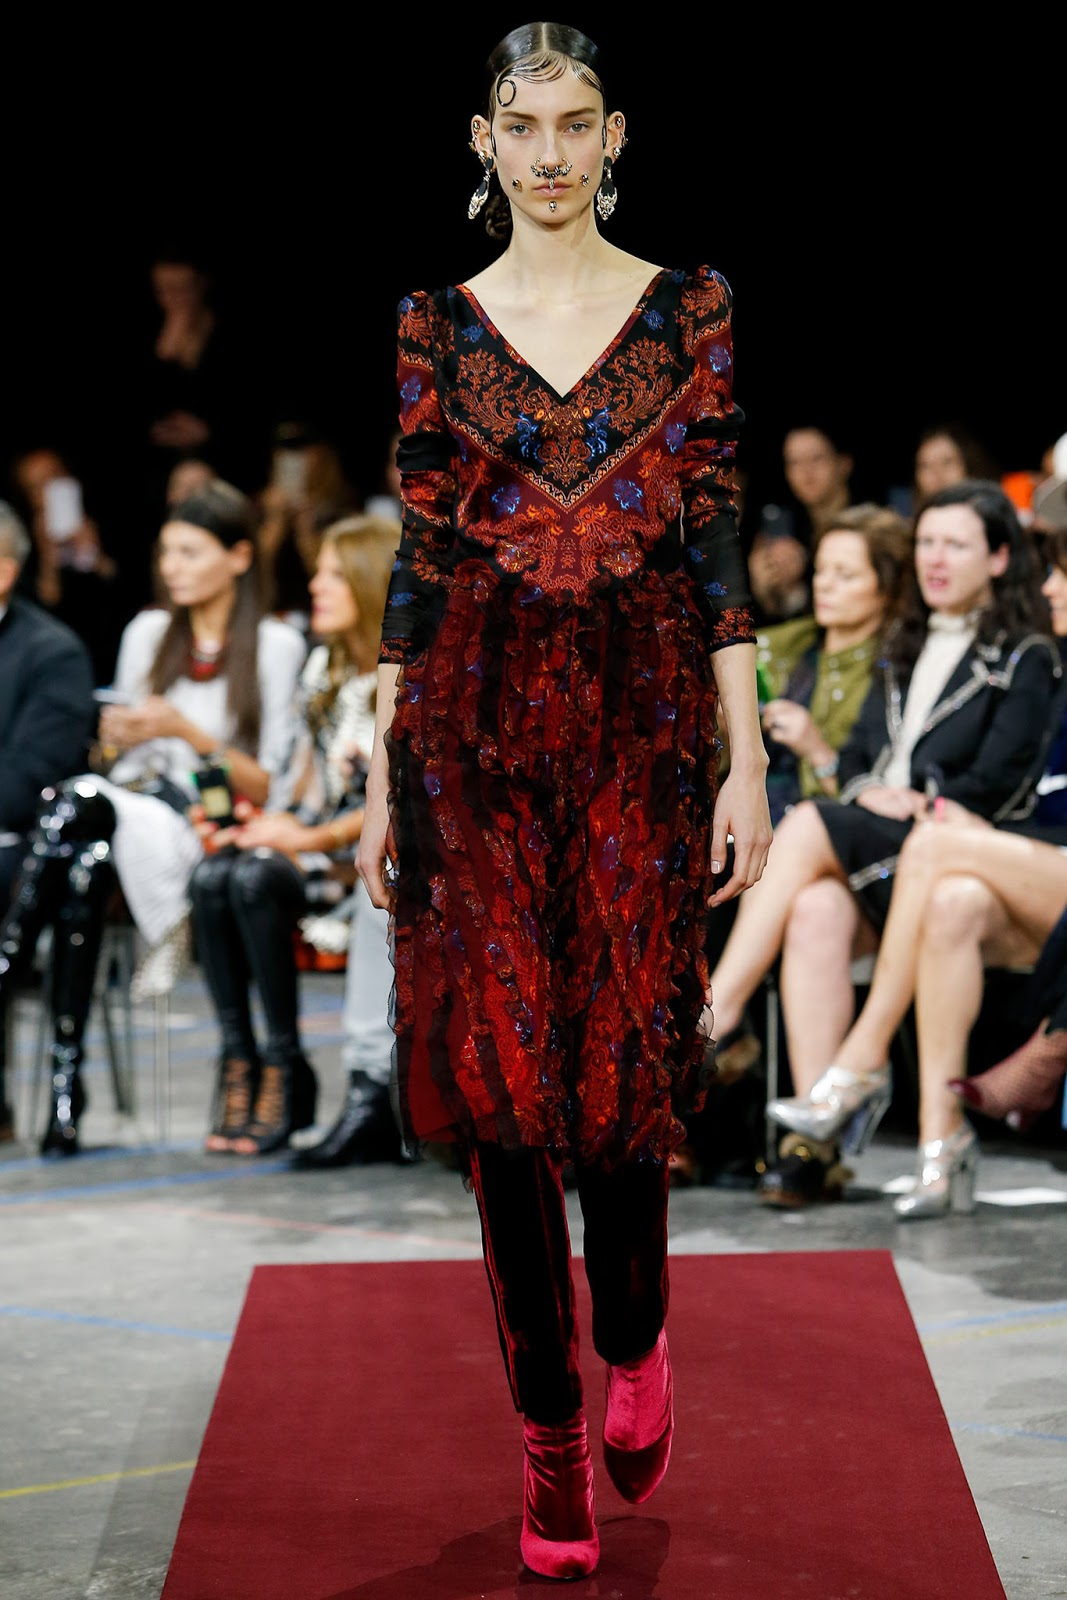 Brocade trend on AW 2015 runway at Givenchy / via www.fashionedbylove.co.uk